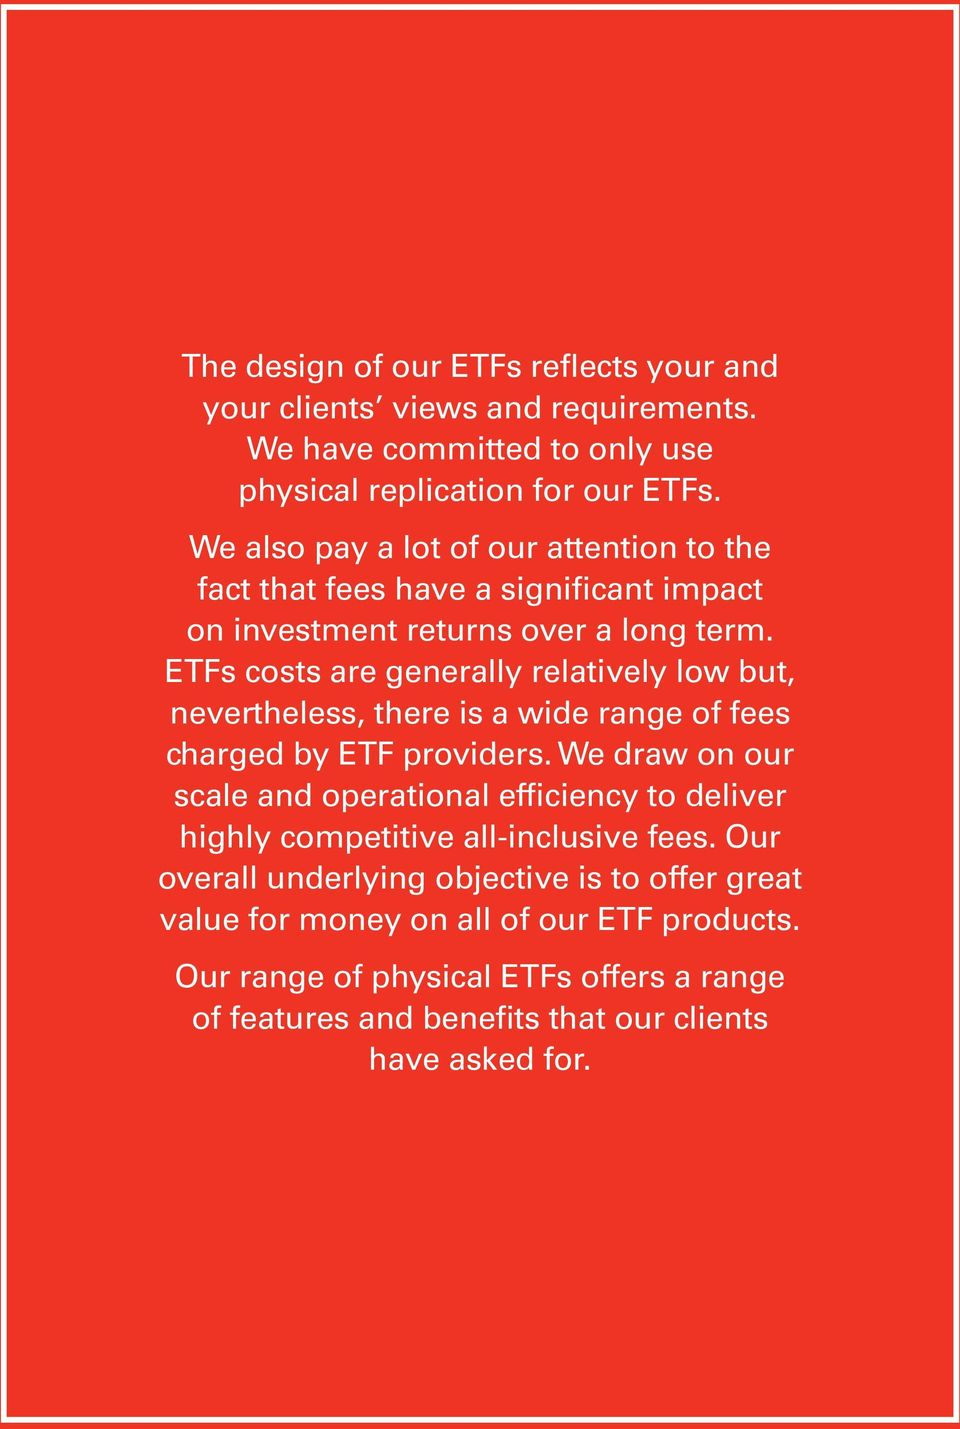 ETFs costs are generally relatively low but, nevertheless, there is a wide range of fees charged by ETF providers.